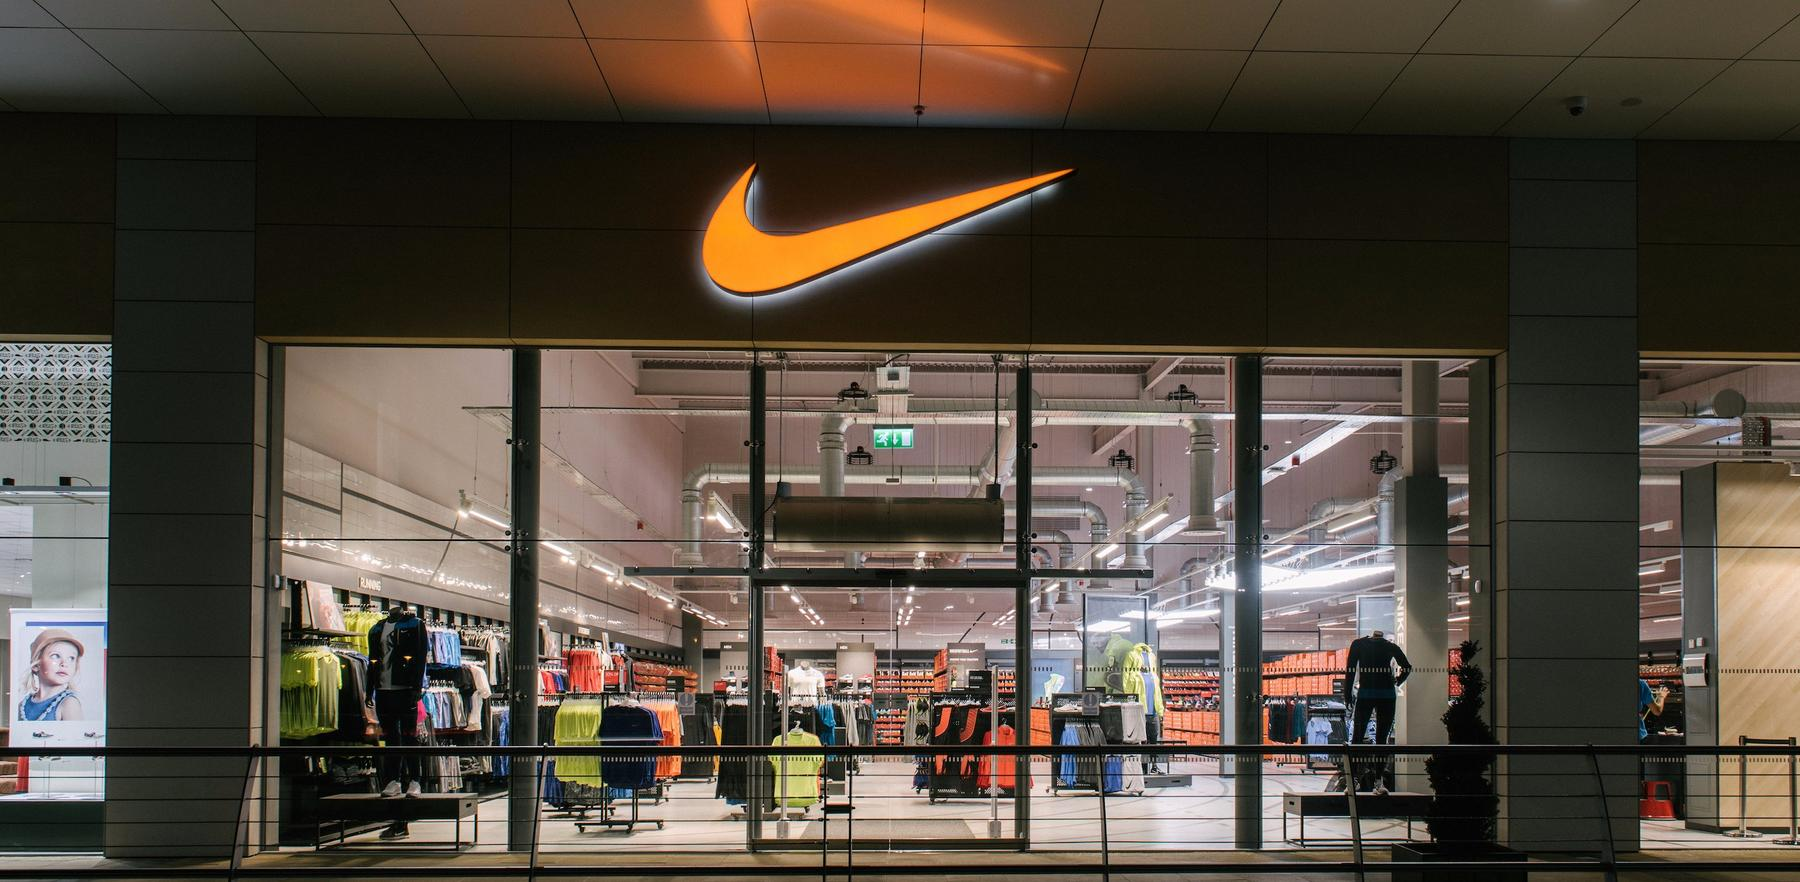 53b52cbeac4d6 Nike Factory Store Rugby. Rugby